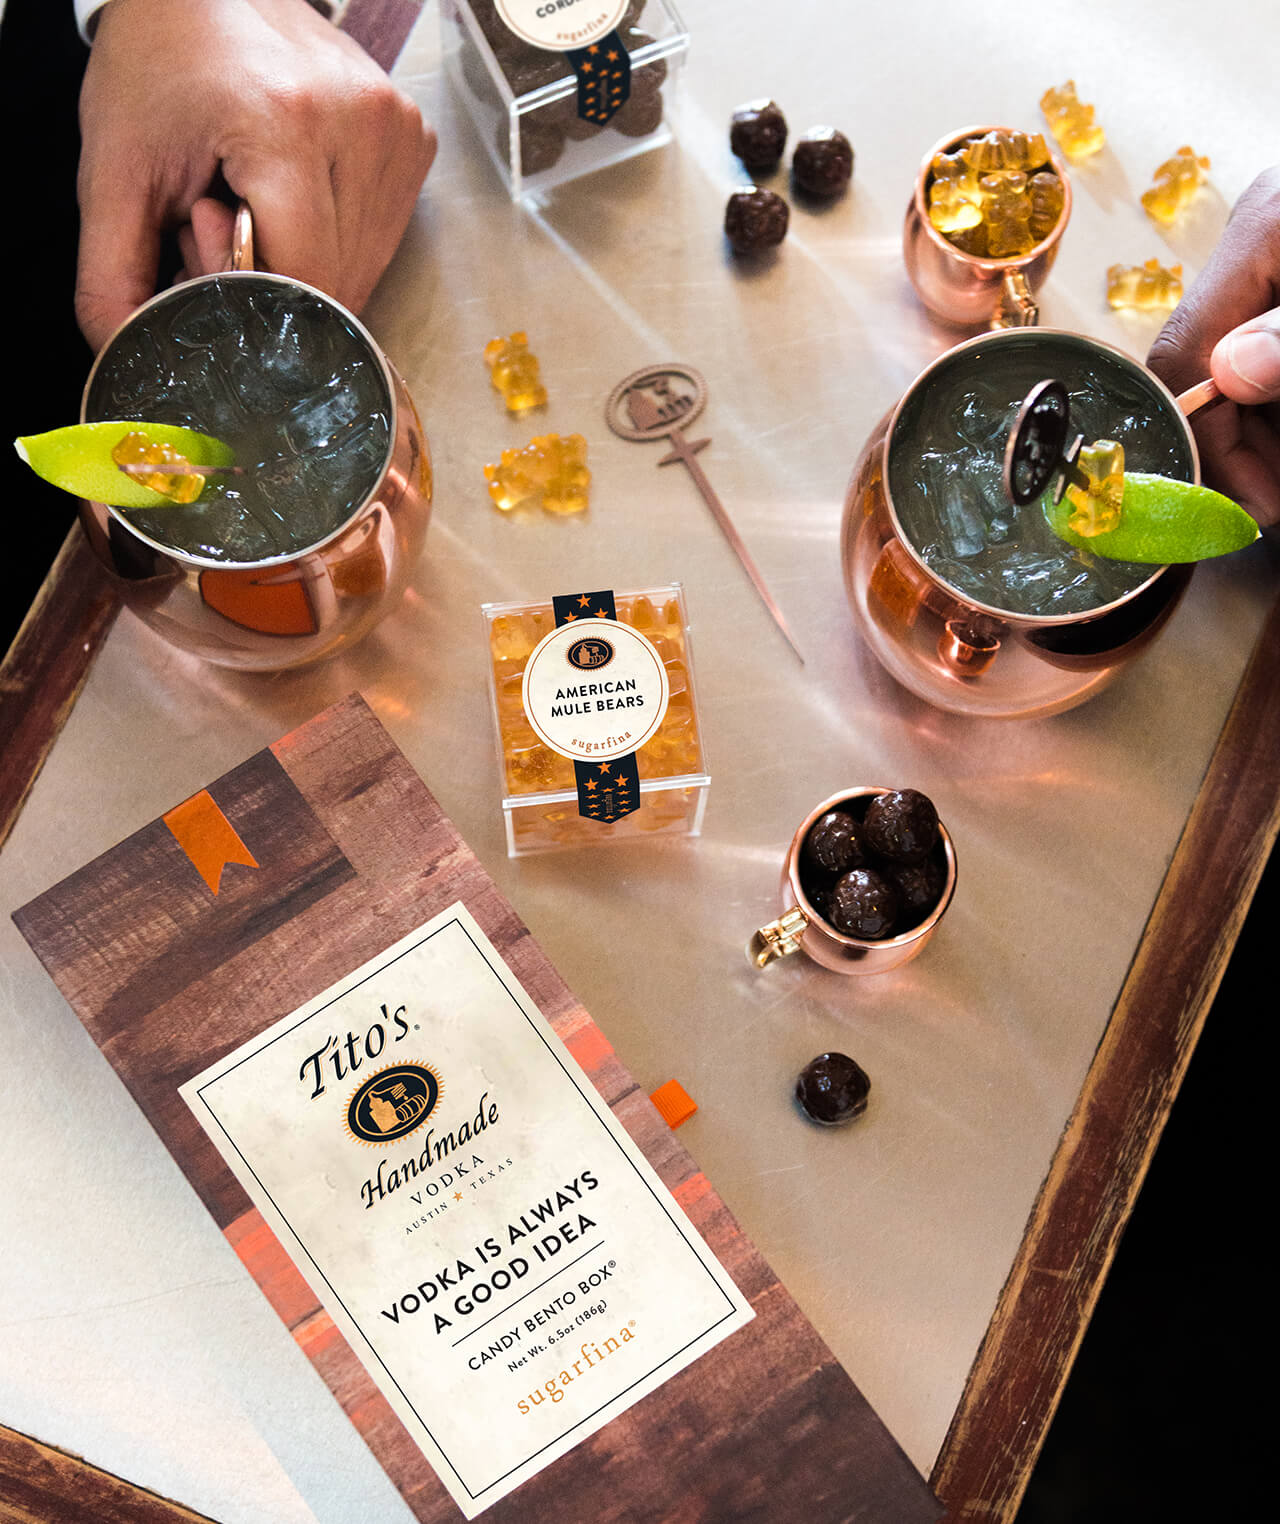 Tito's Vodka Candy Collection - showing American Mule gummy bears and moscow mule glasses